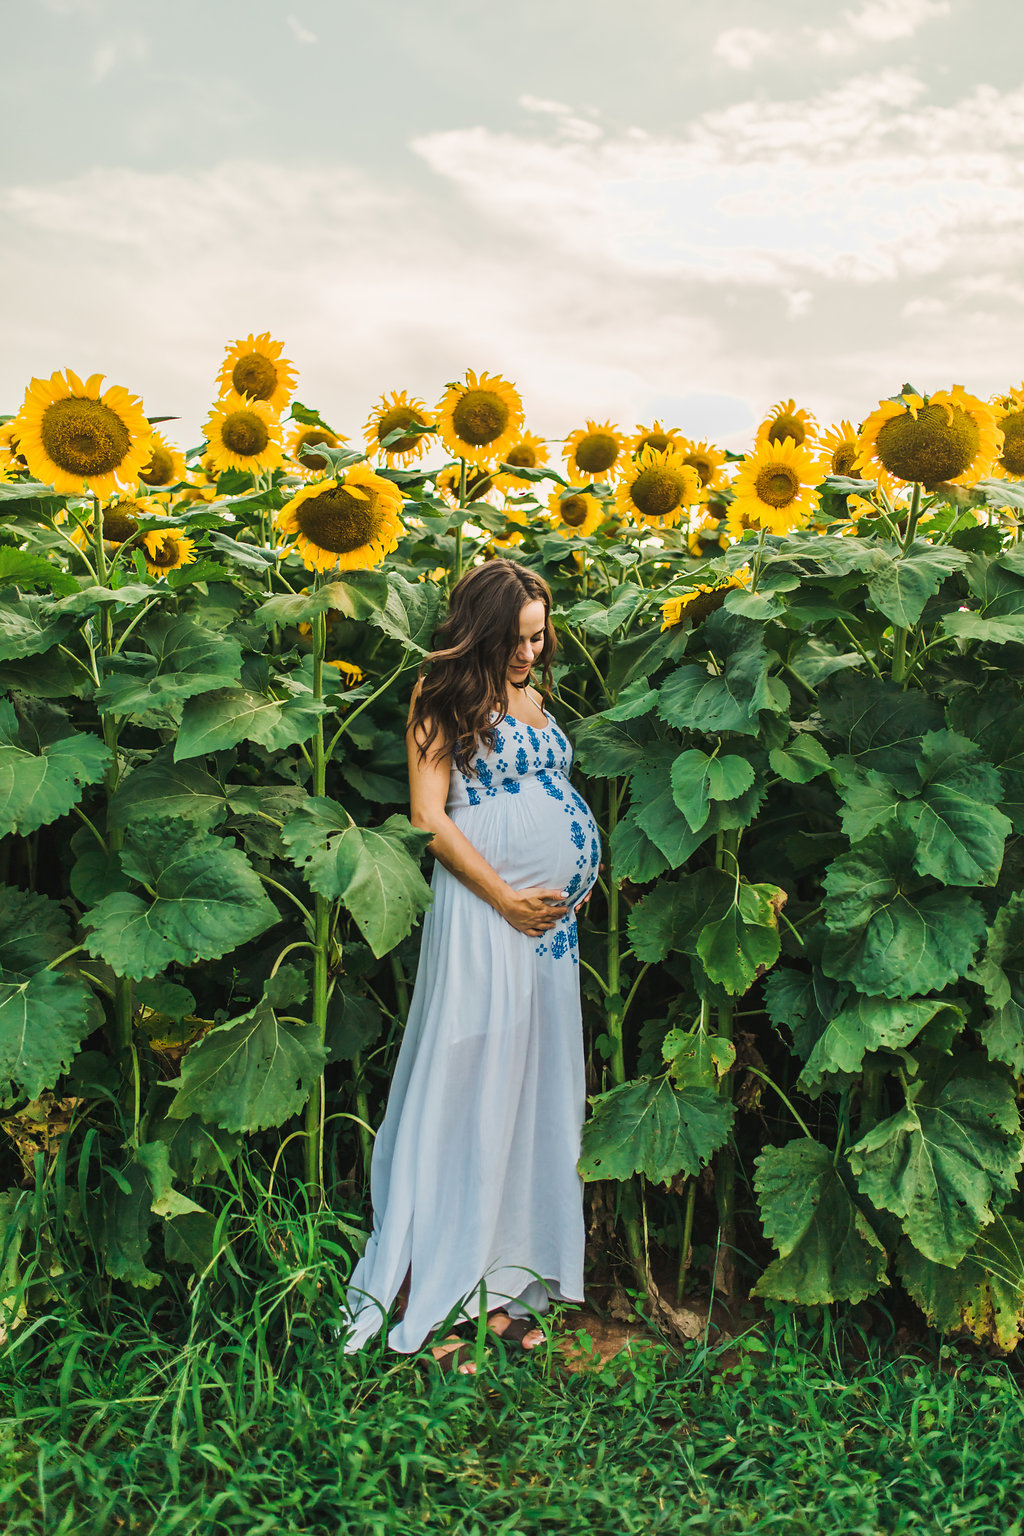 Sunflower-Maternity-Nashville-Tennessee-Field-Batey-Farms-1